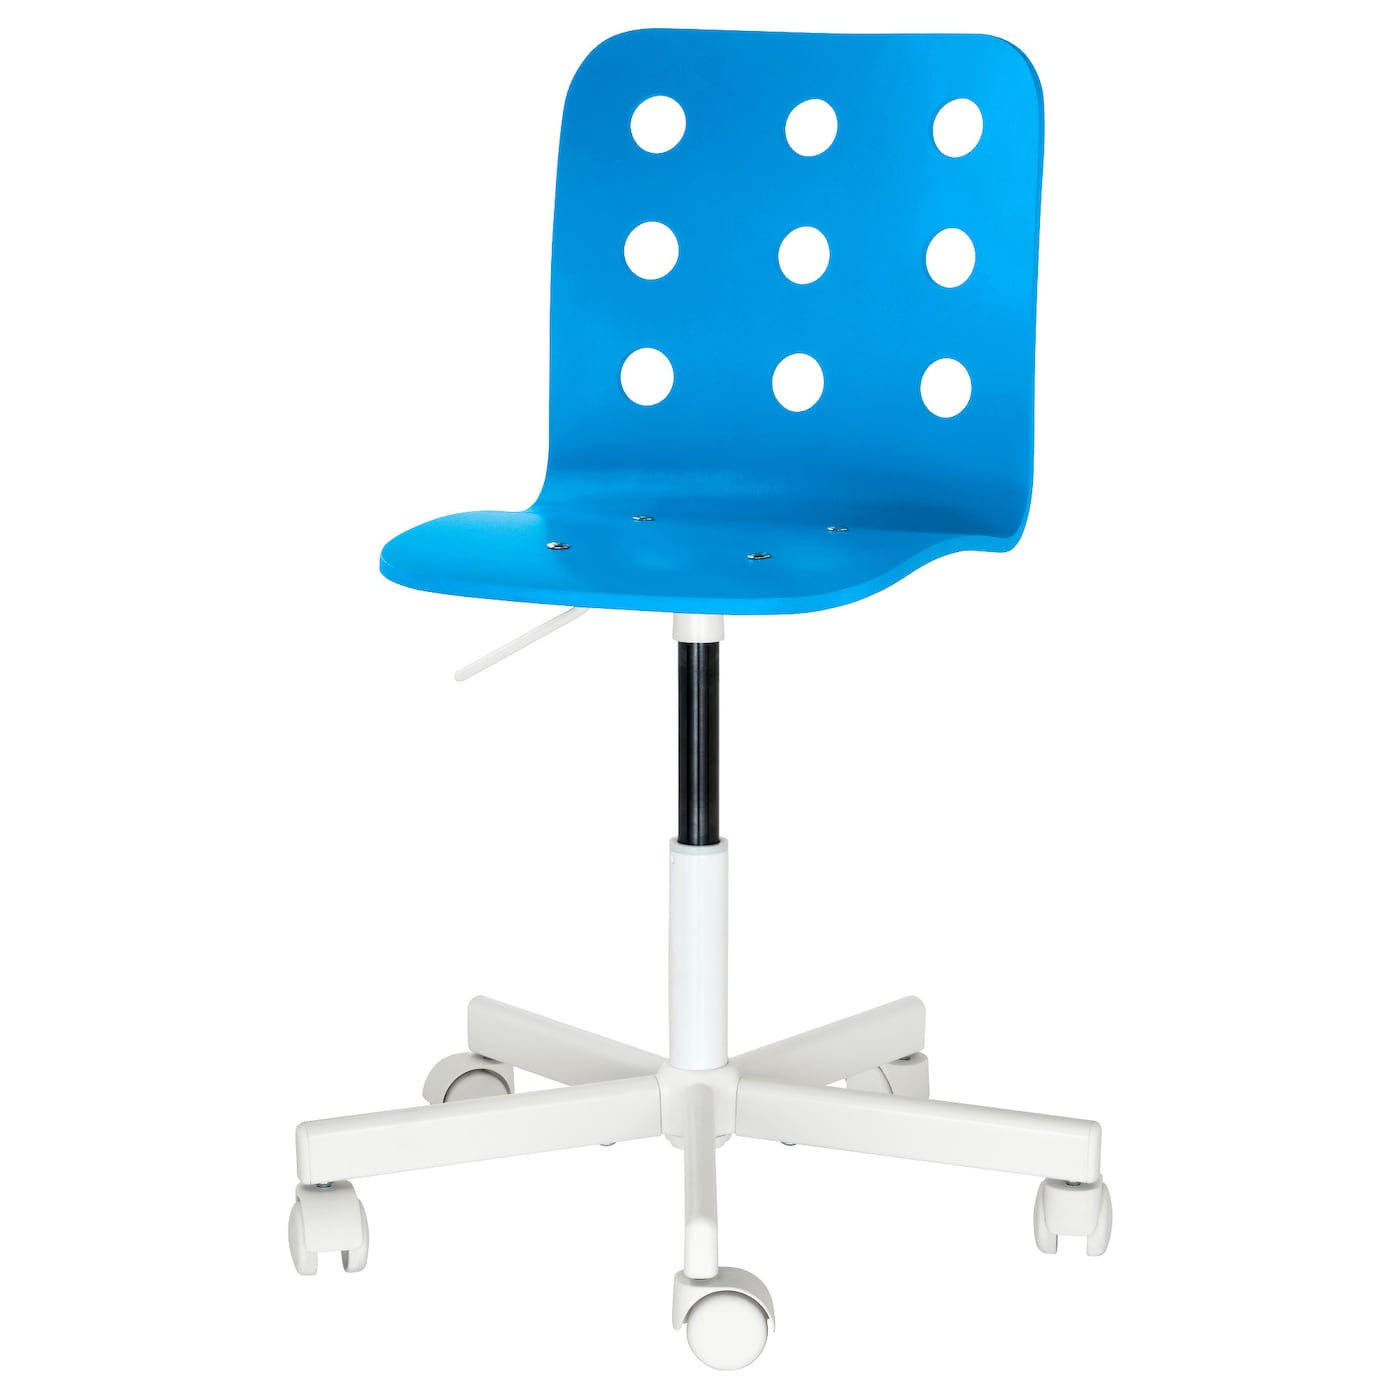 IKEA JULES children's desk chair You sit comfortably since the chair is  adjustable in height.